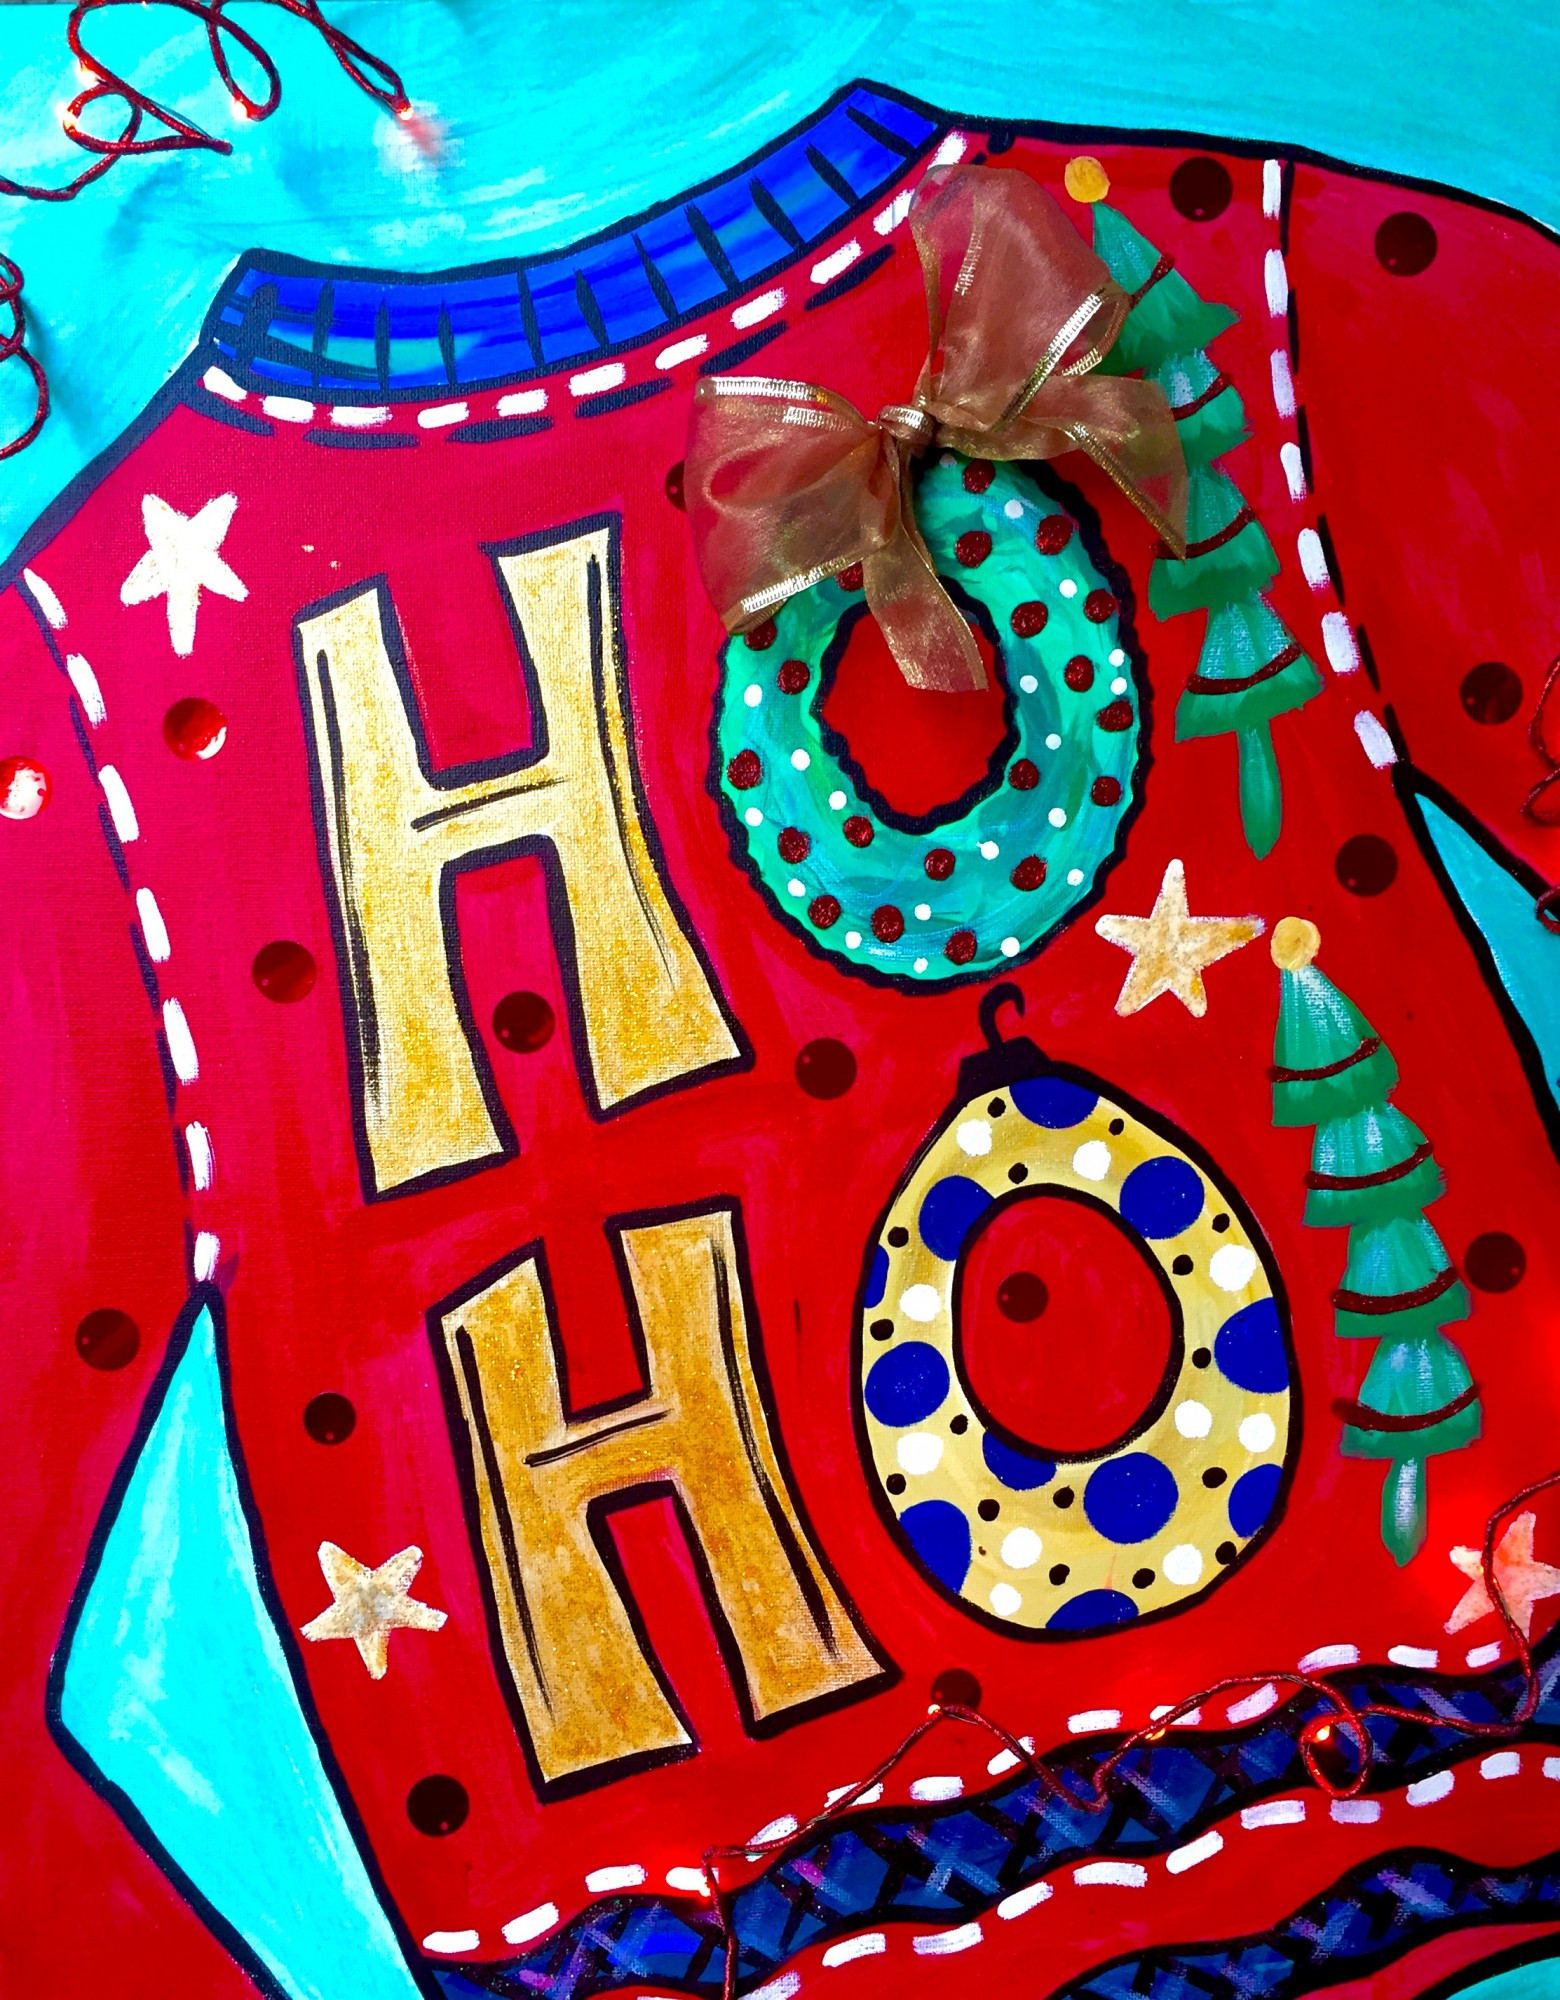 Ho-Ho-HoLiDaY Awesome Sweater PARTY! $35